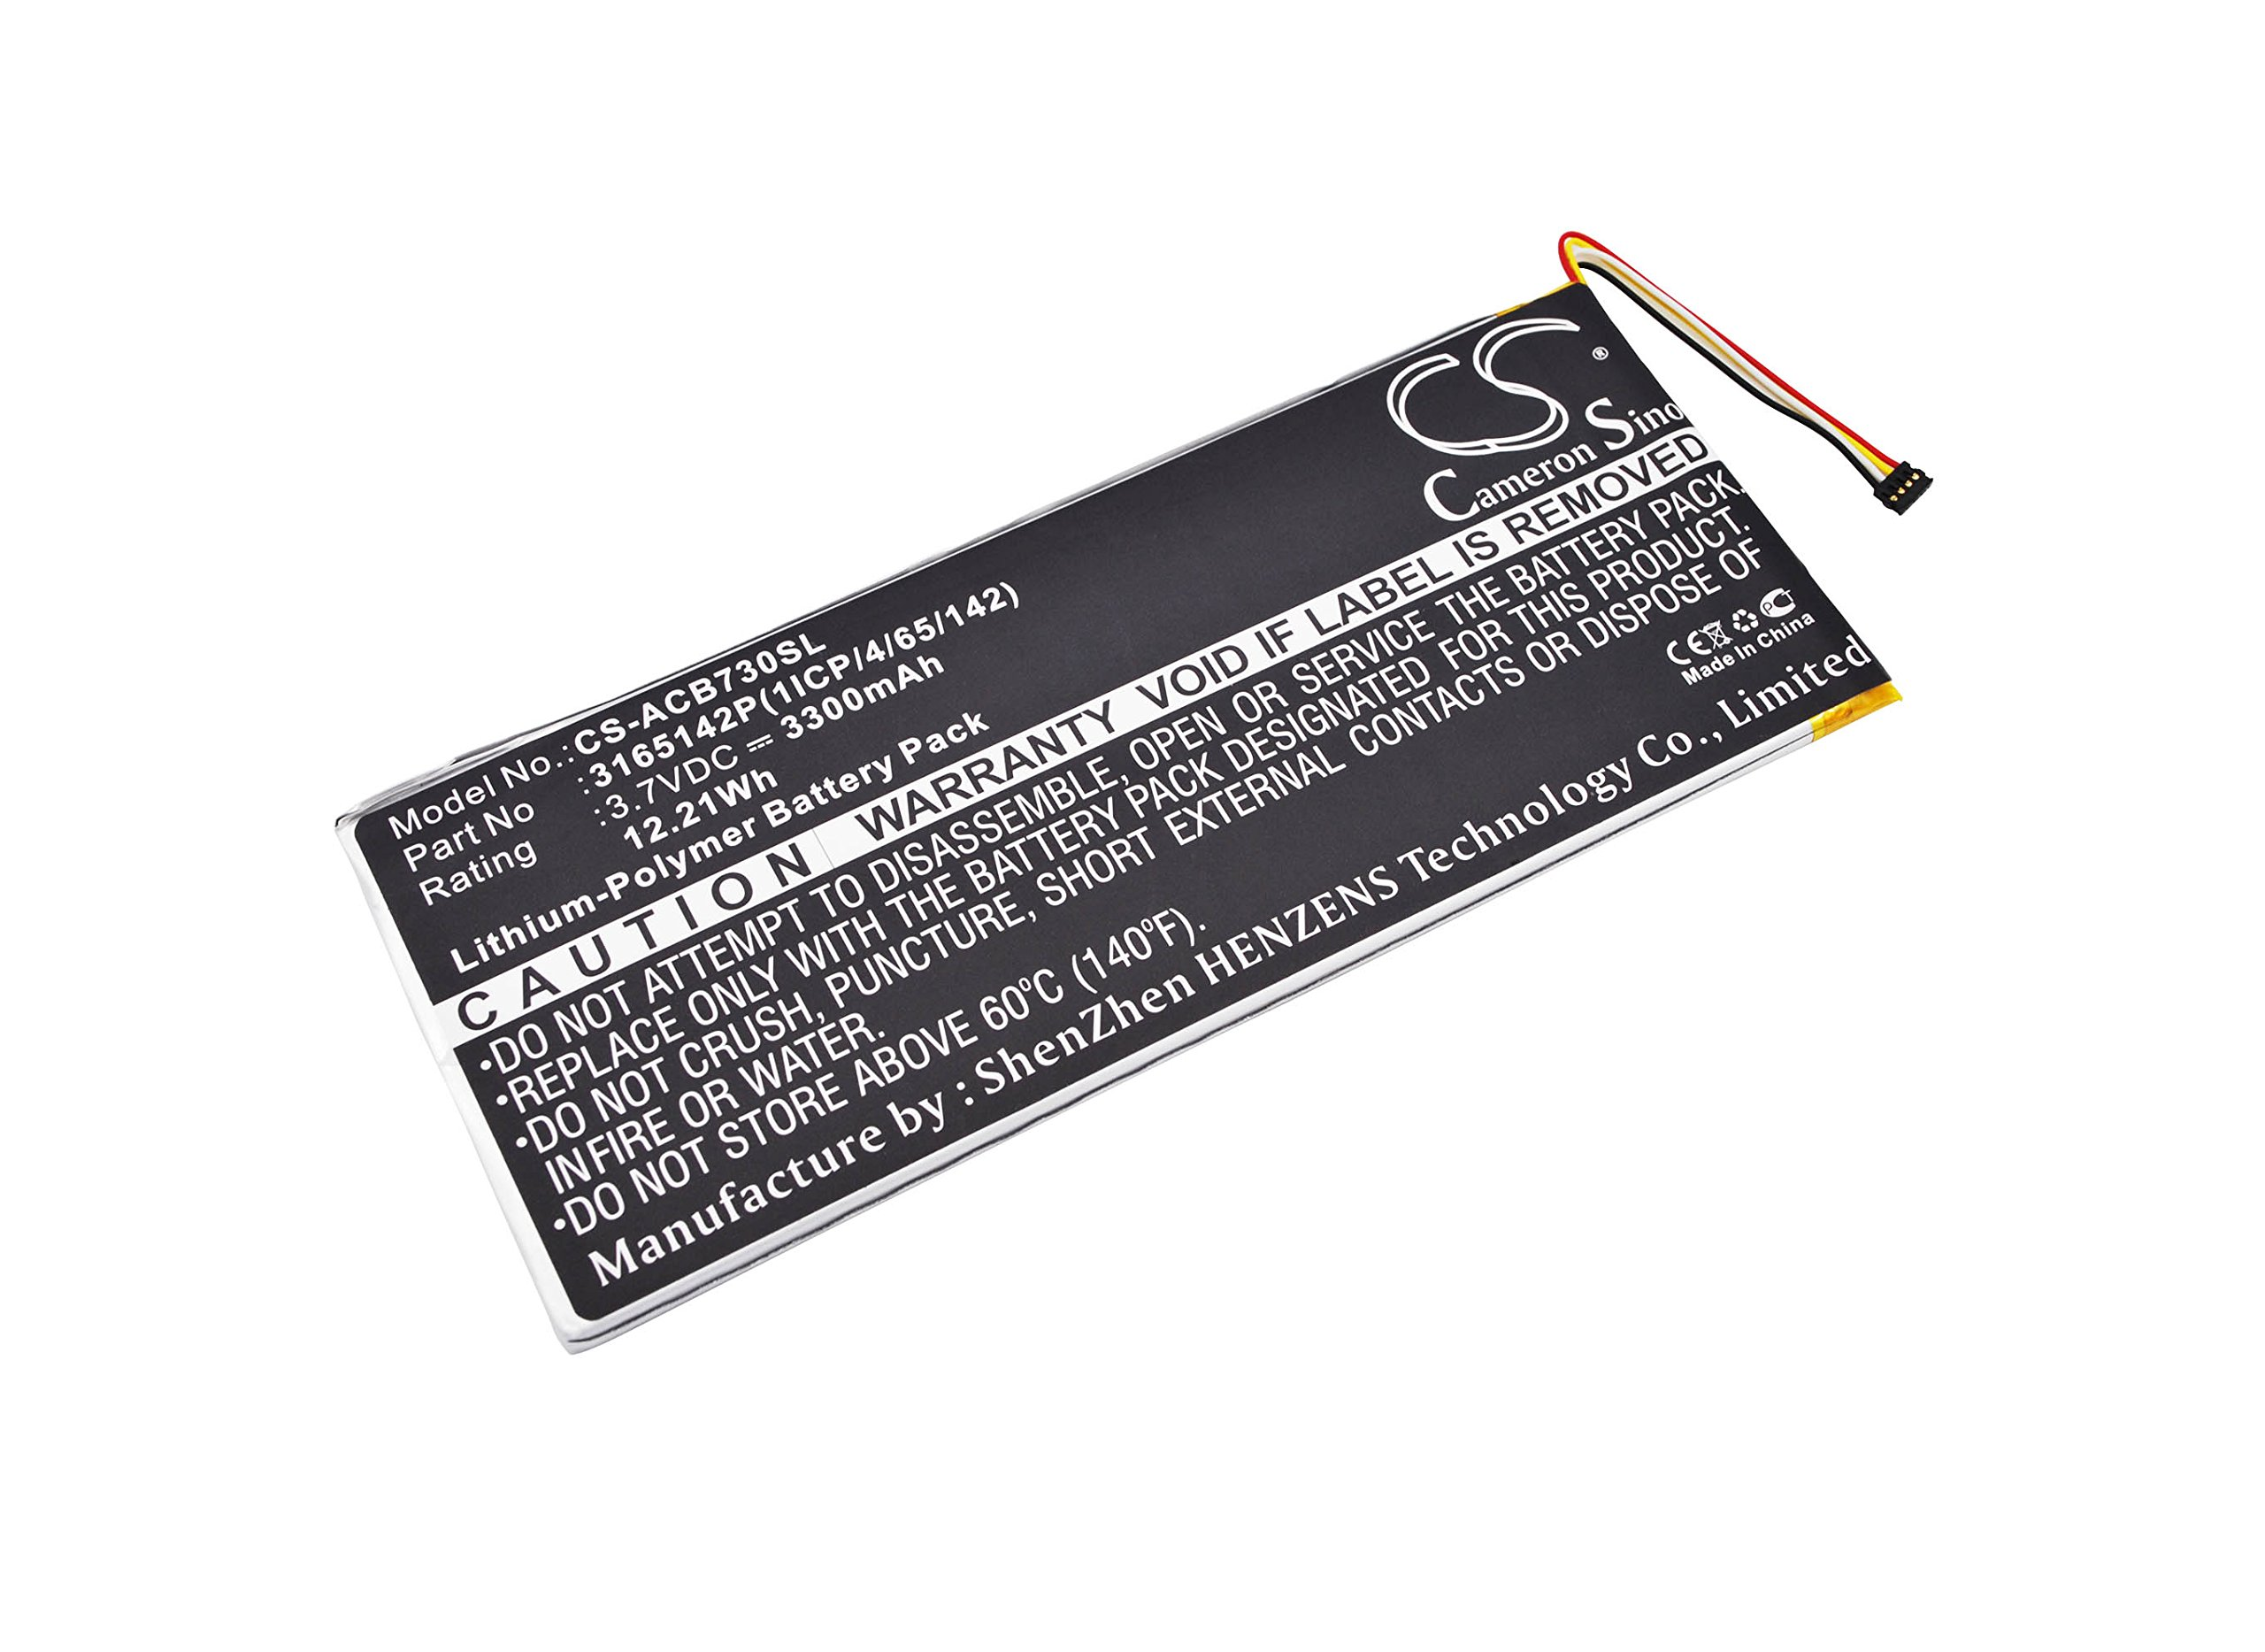 Cameron Sino 3300mAh / 12.21Wh Replacement Battery for Acer Iconia One 7 B1-730HD